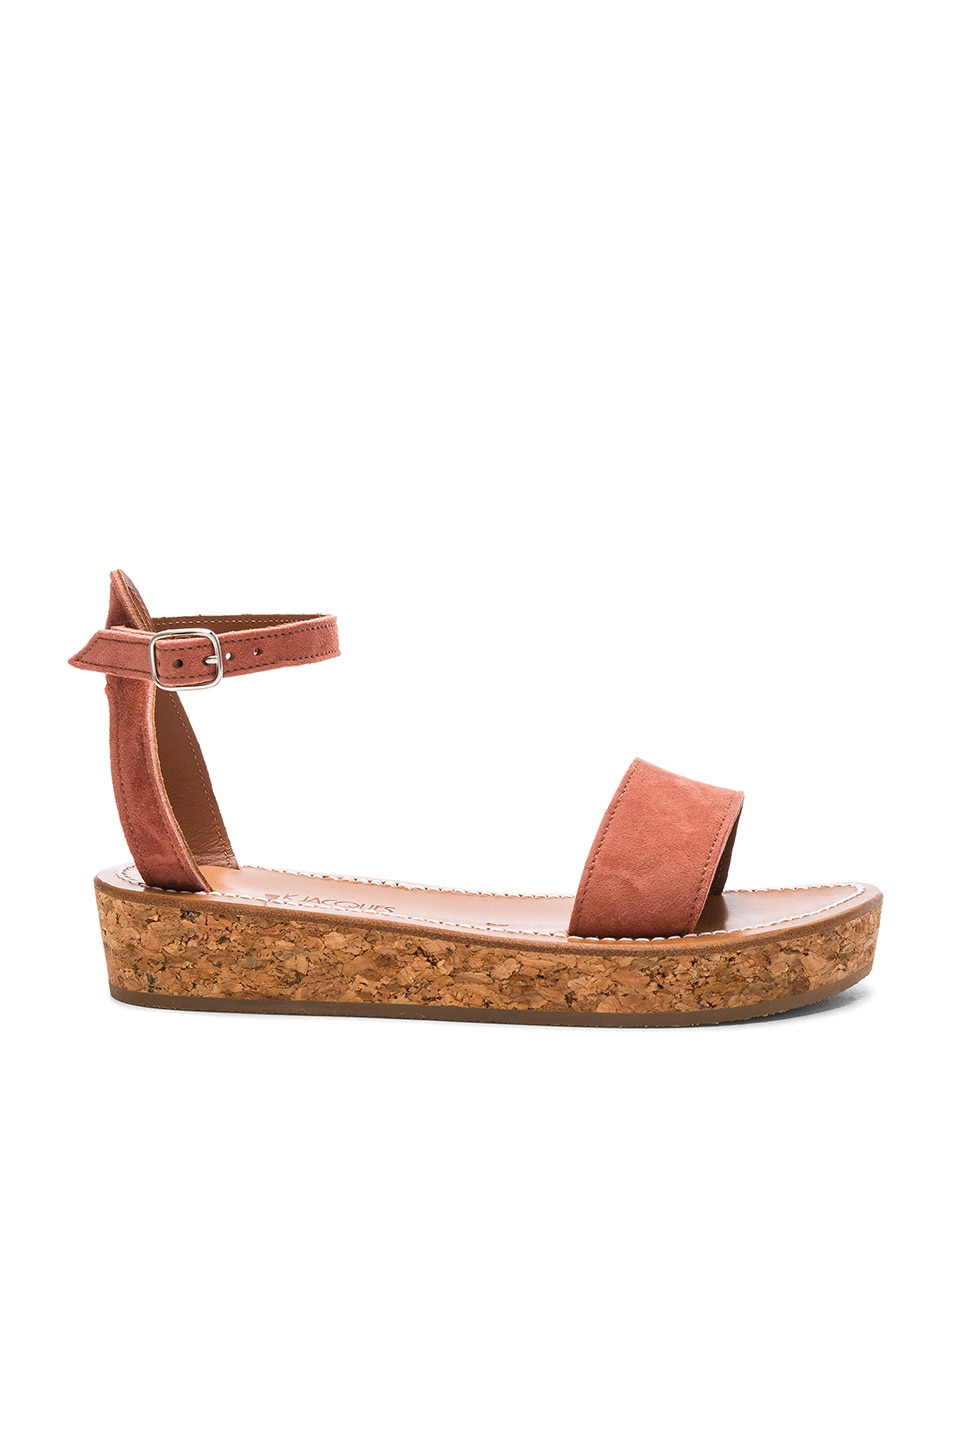 Image 1 of K Jacques Suede Thalloire Sandals in Suede Gilly